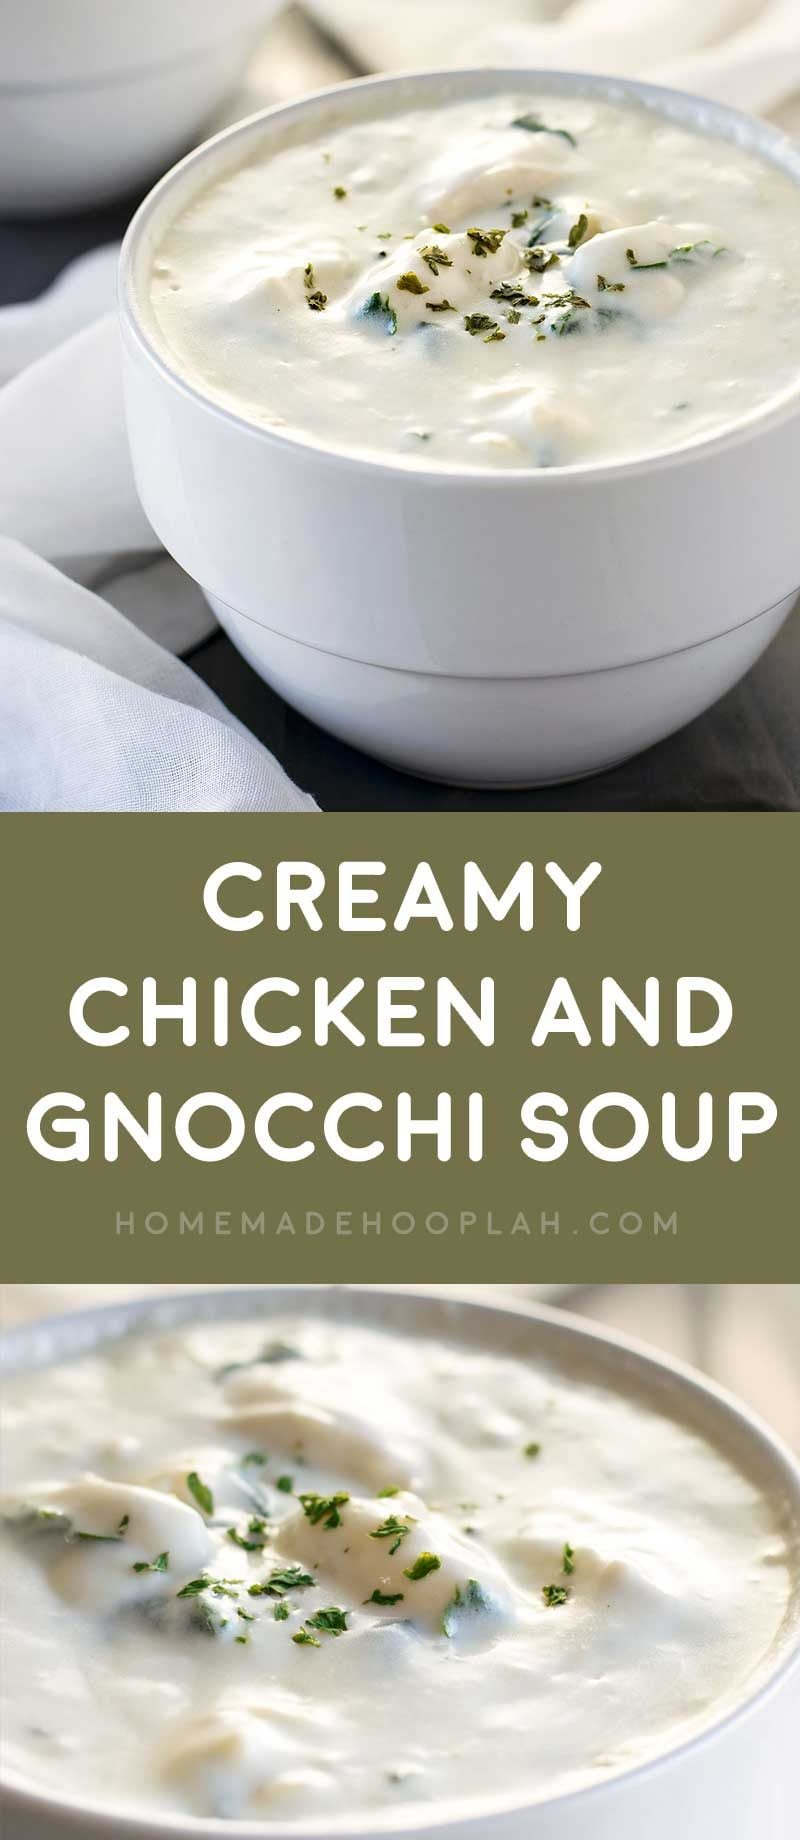 Creamy Chicken and Gnocchi Soup! Creamy and delicious gnocchi soup made with savory chicken and seasoned with and onions, celery, carrots, spinach, and herbs. | HomemadeHooplah.com